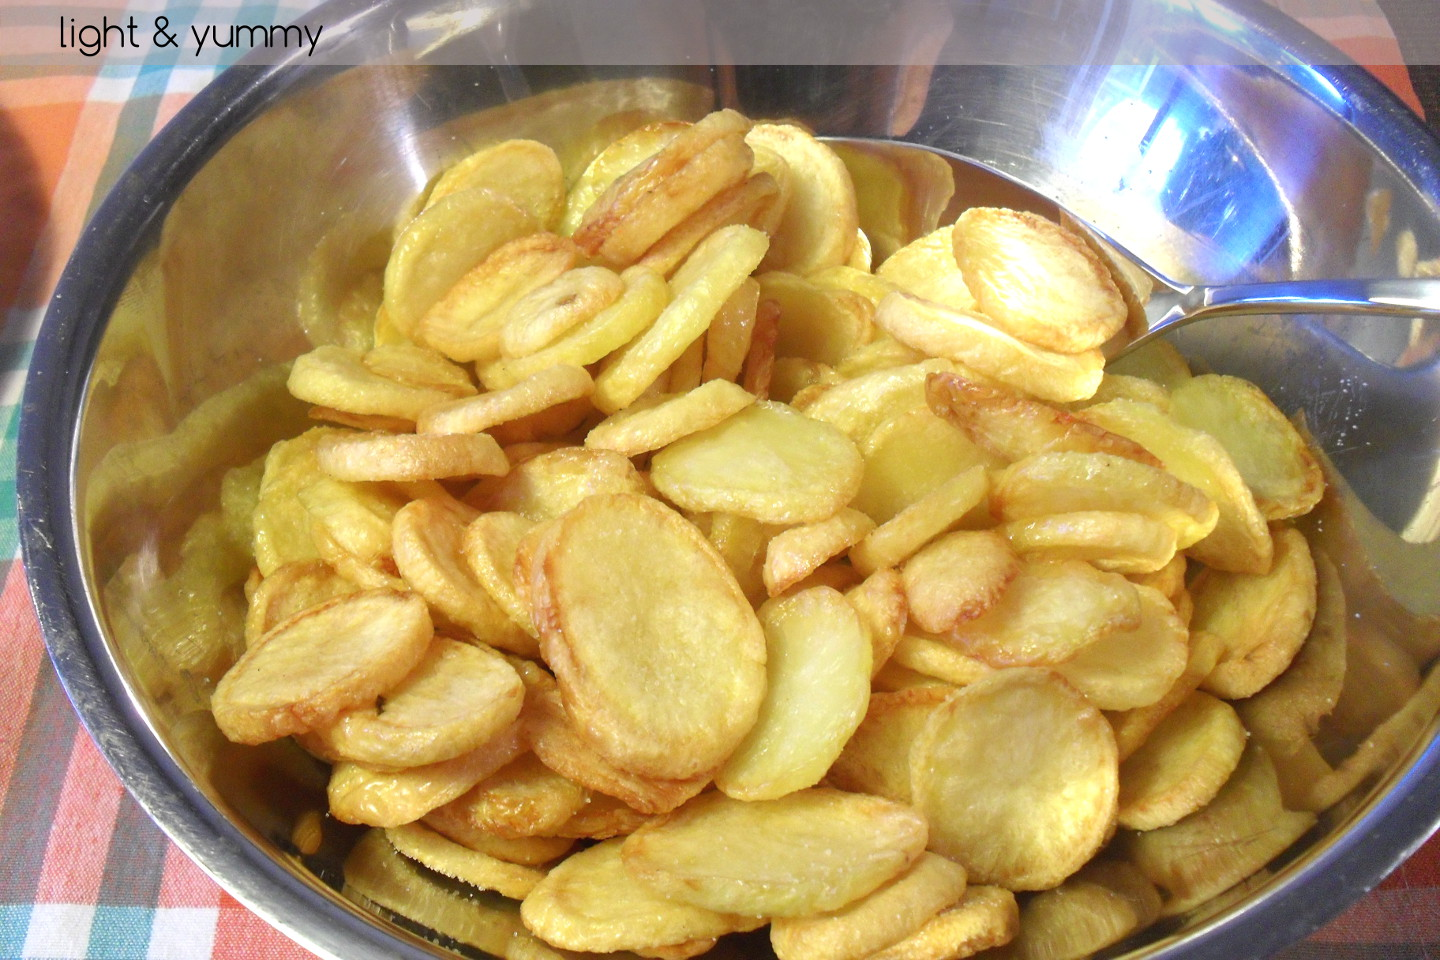 Very crunchy chips recipe for oven or airfryer light yummy - Potatoes choose depending food want prepare ...